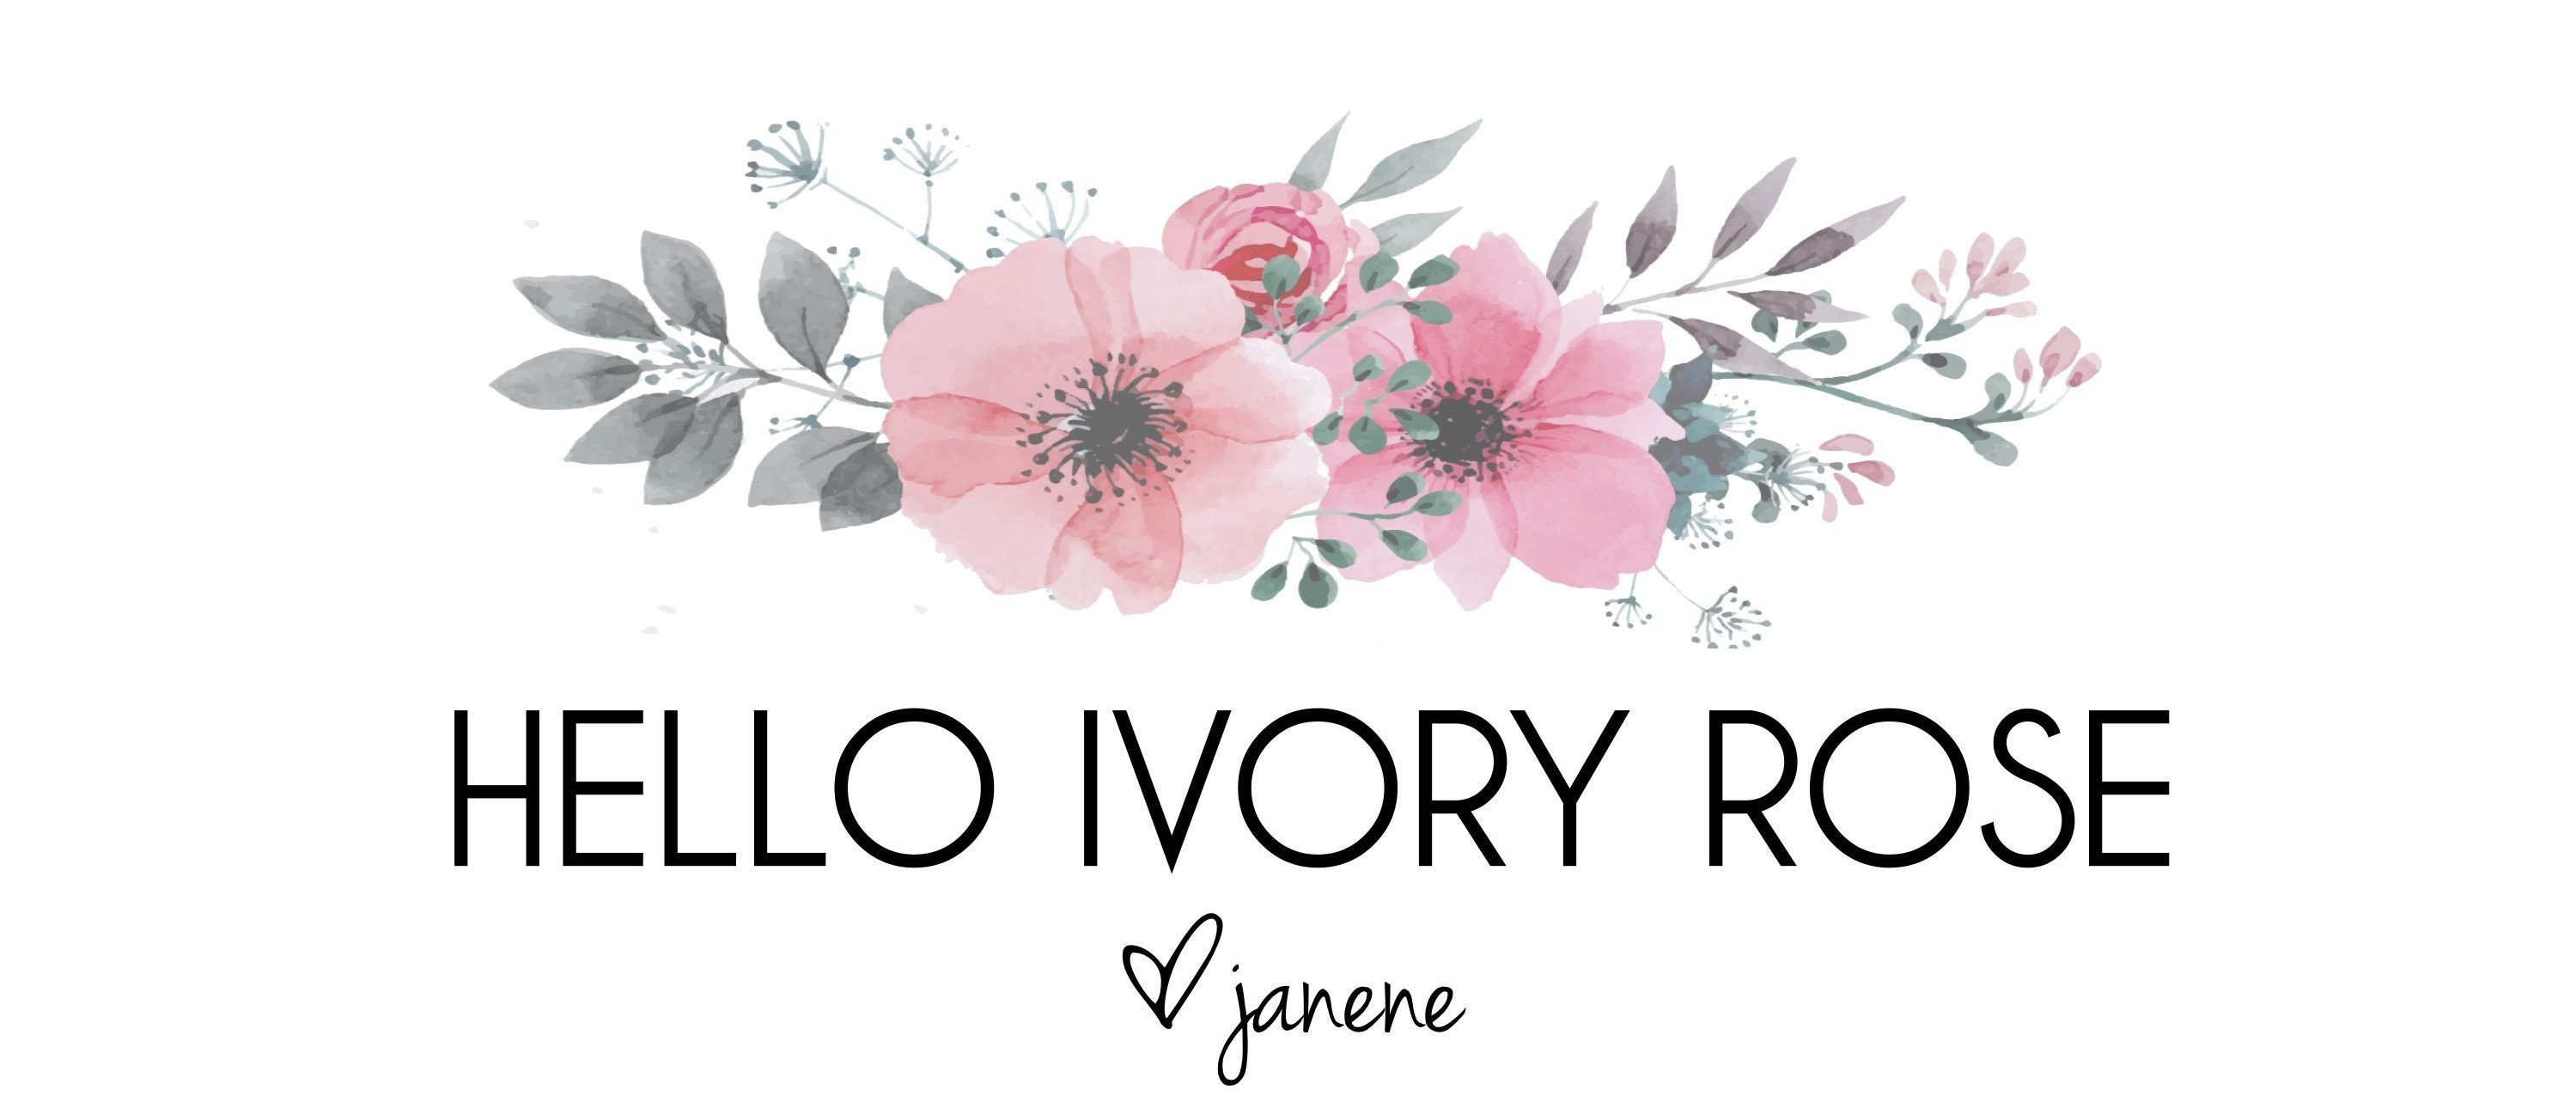 Getting Your Babycakes Sleeping 8 Hours by 8 Weeks! – Hello Ivory Rose